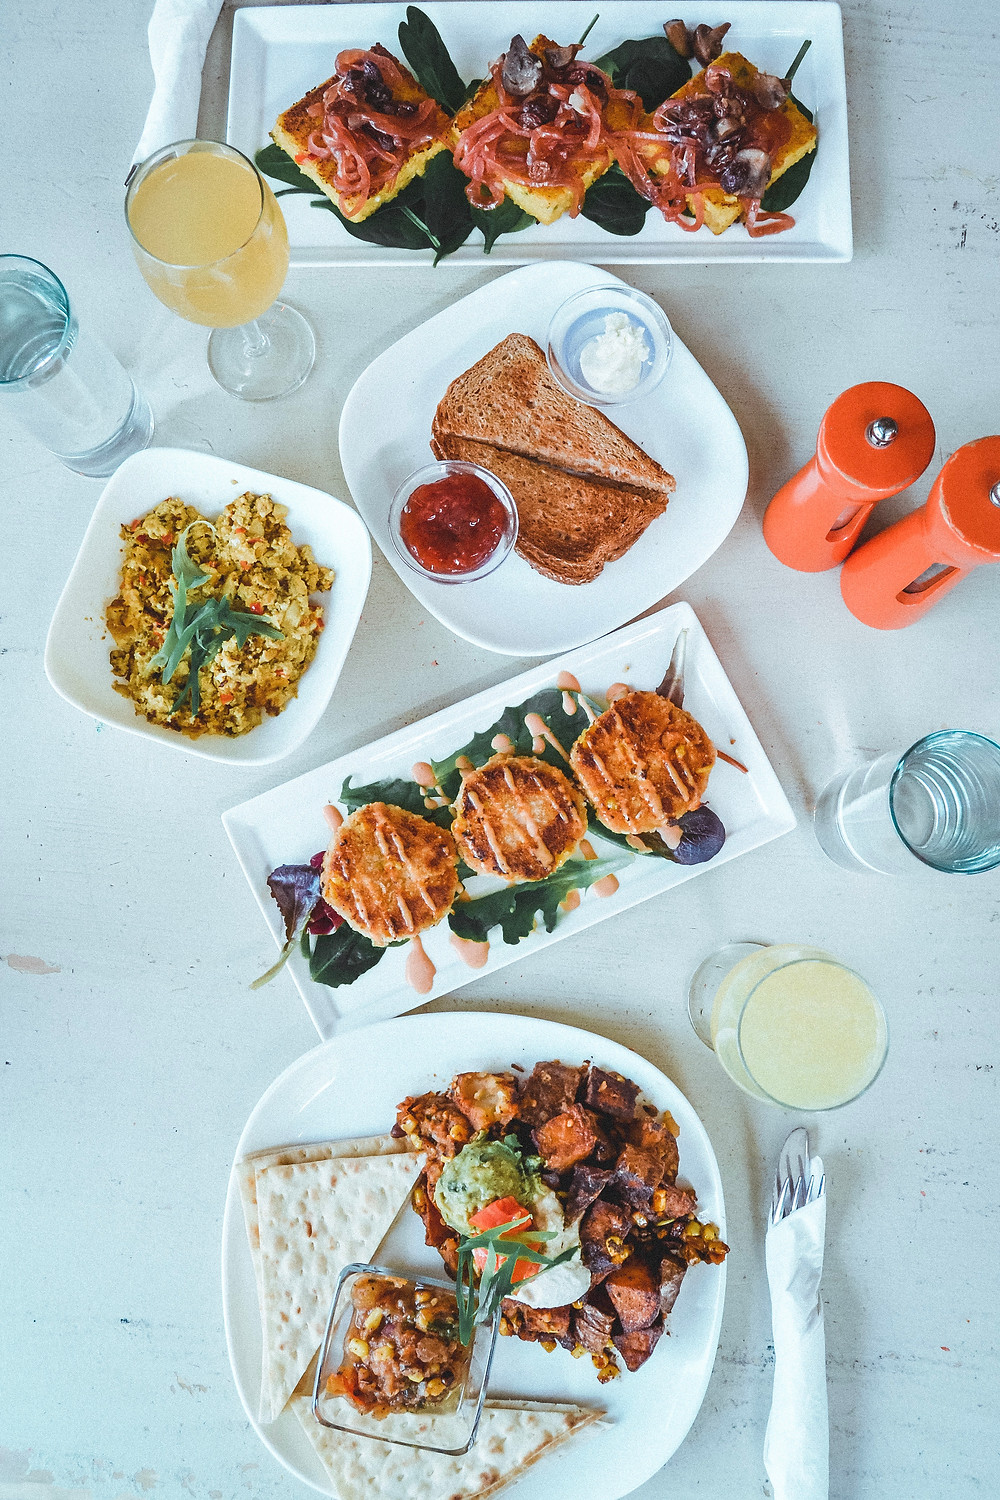 5 Best Vegan Restaurants in New Orleans - What Taylor Likes - Seed